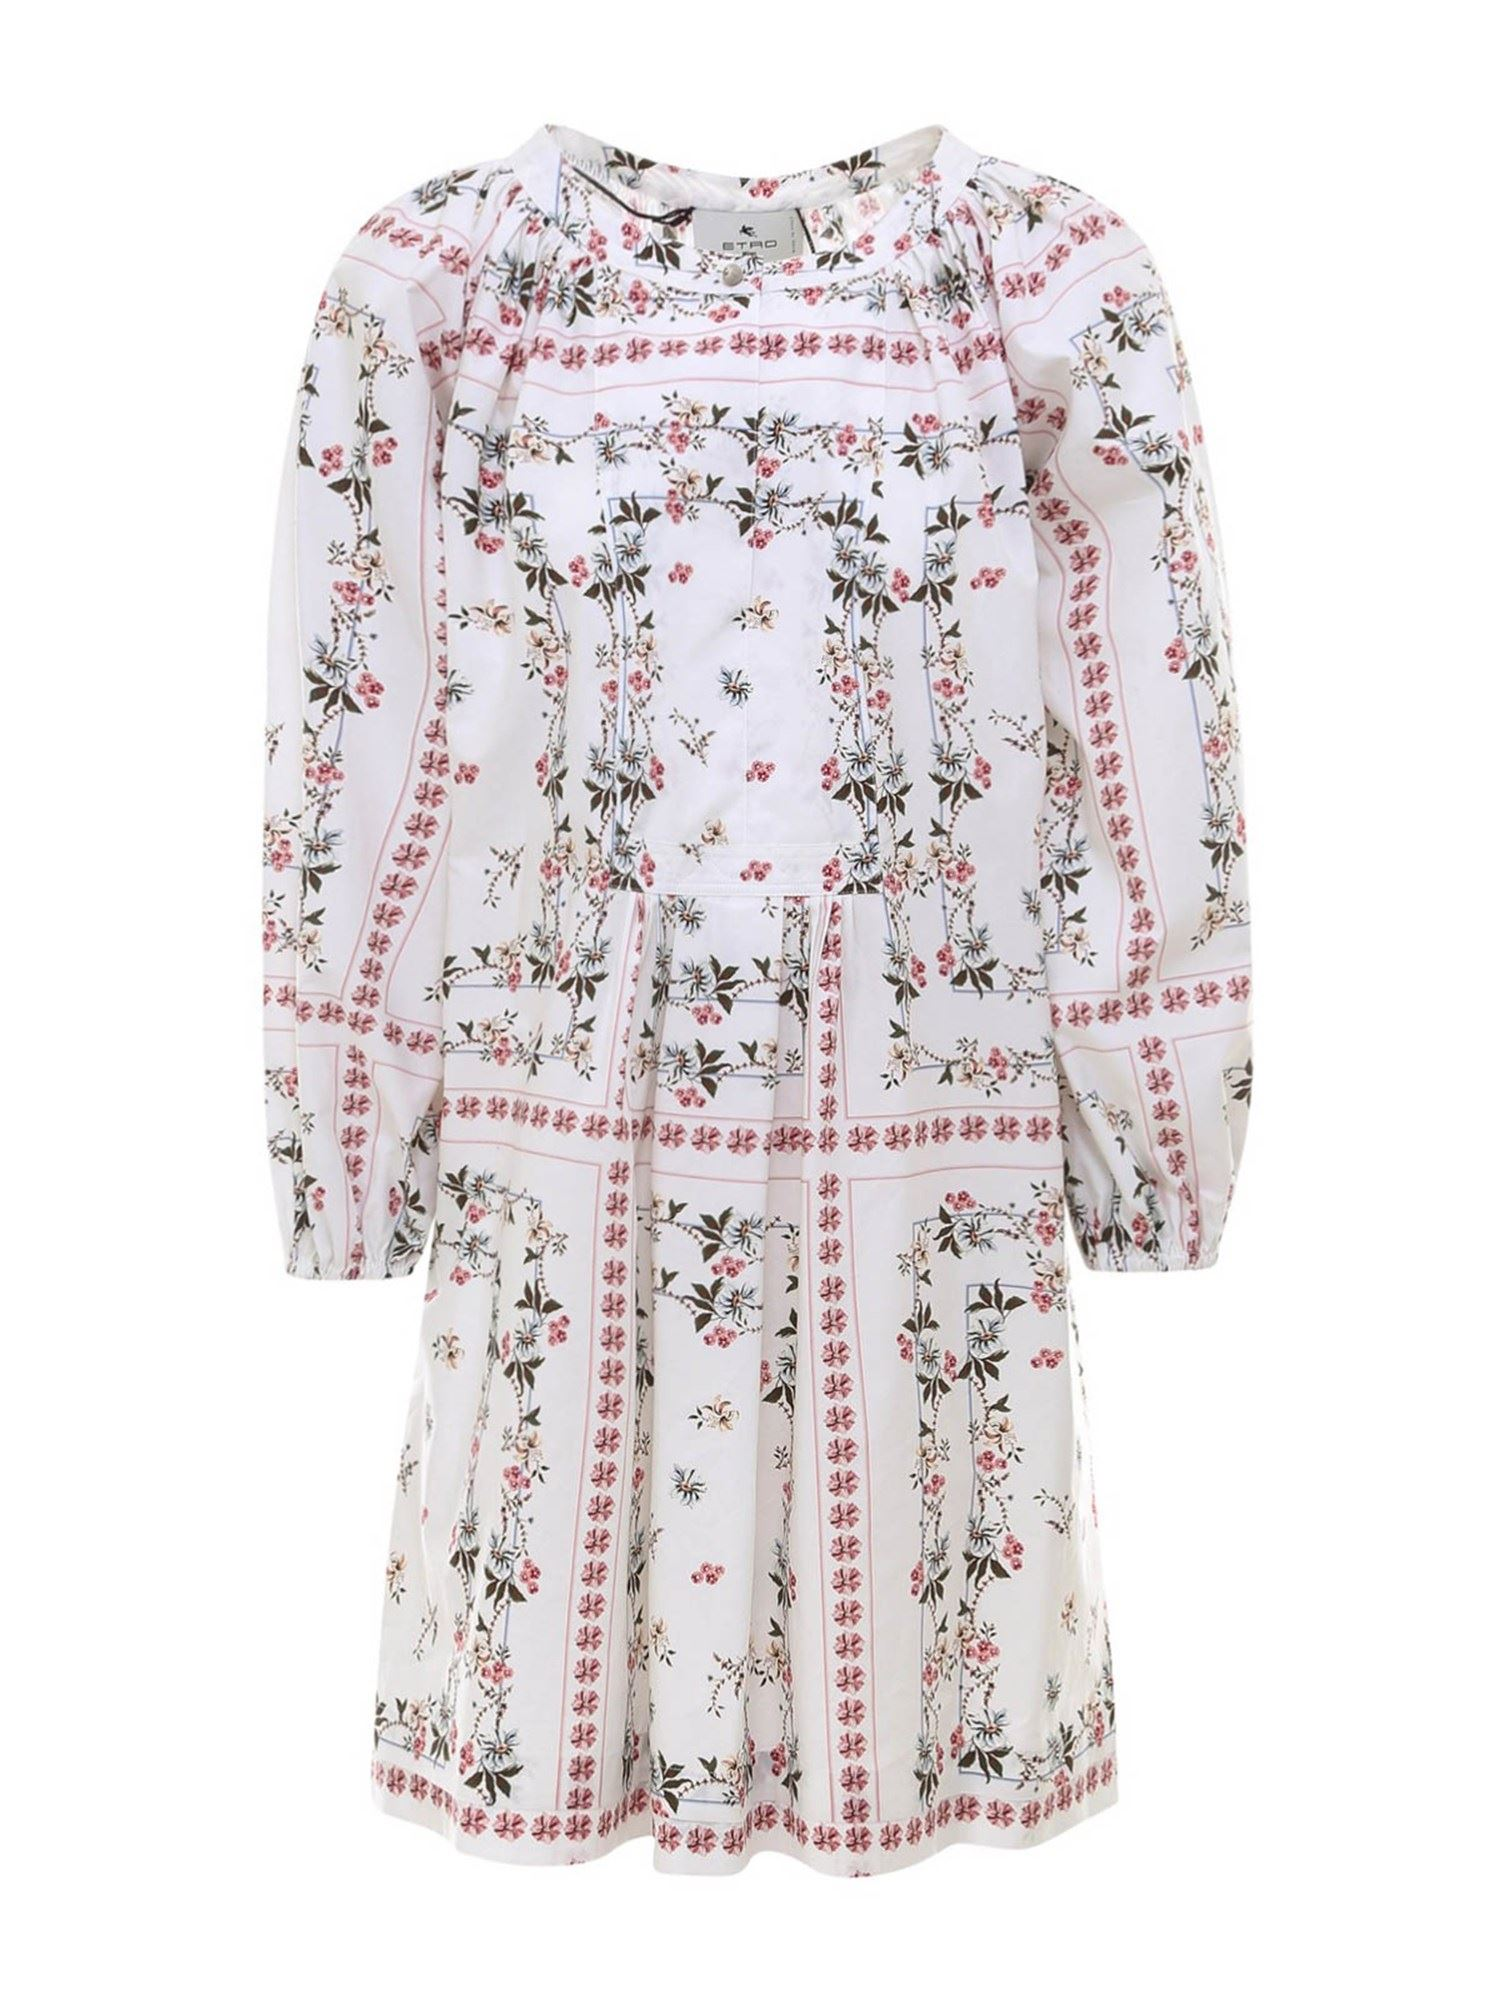 Etro FLORAL PRINT COTTON DRESS IN WHITE